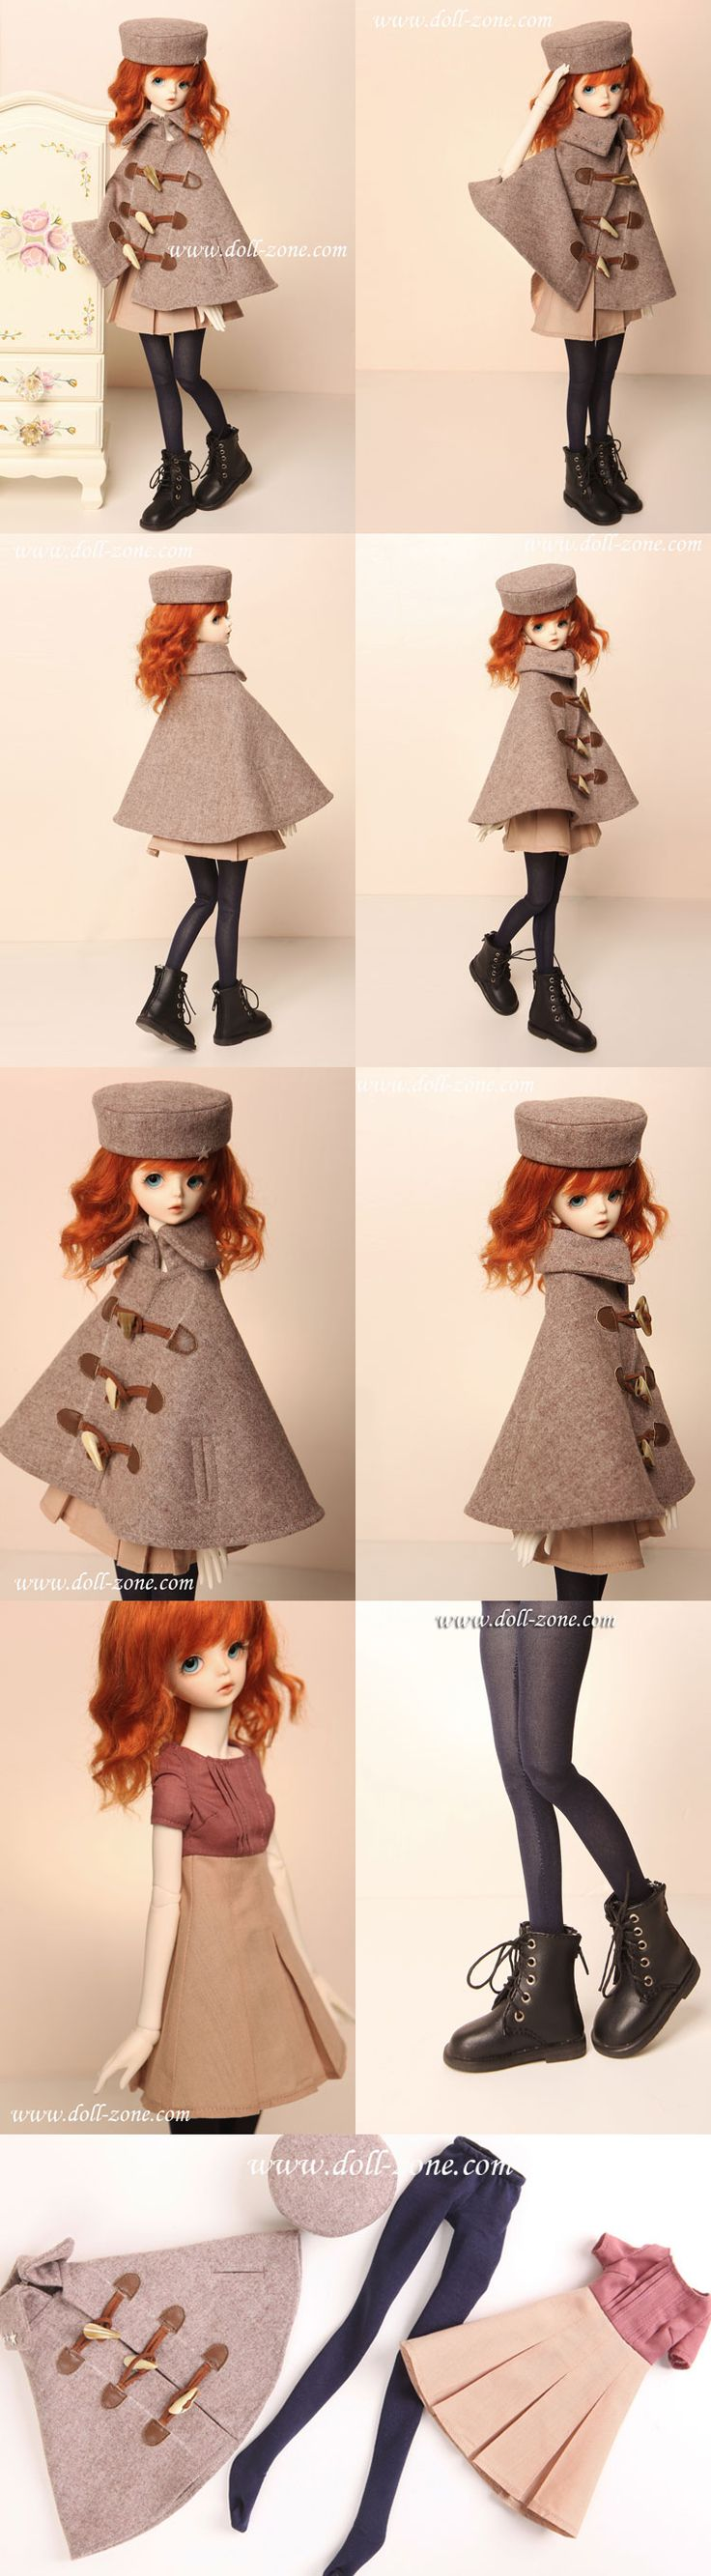 BJD Clothes C45-066 for MSD Ball-jointed Doll_MSD_MSD_CLOTHING_Ball Jointed Dolls (BJD) company-Legenddoll